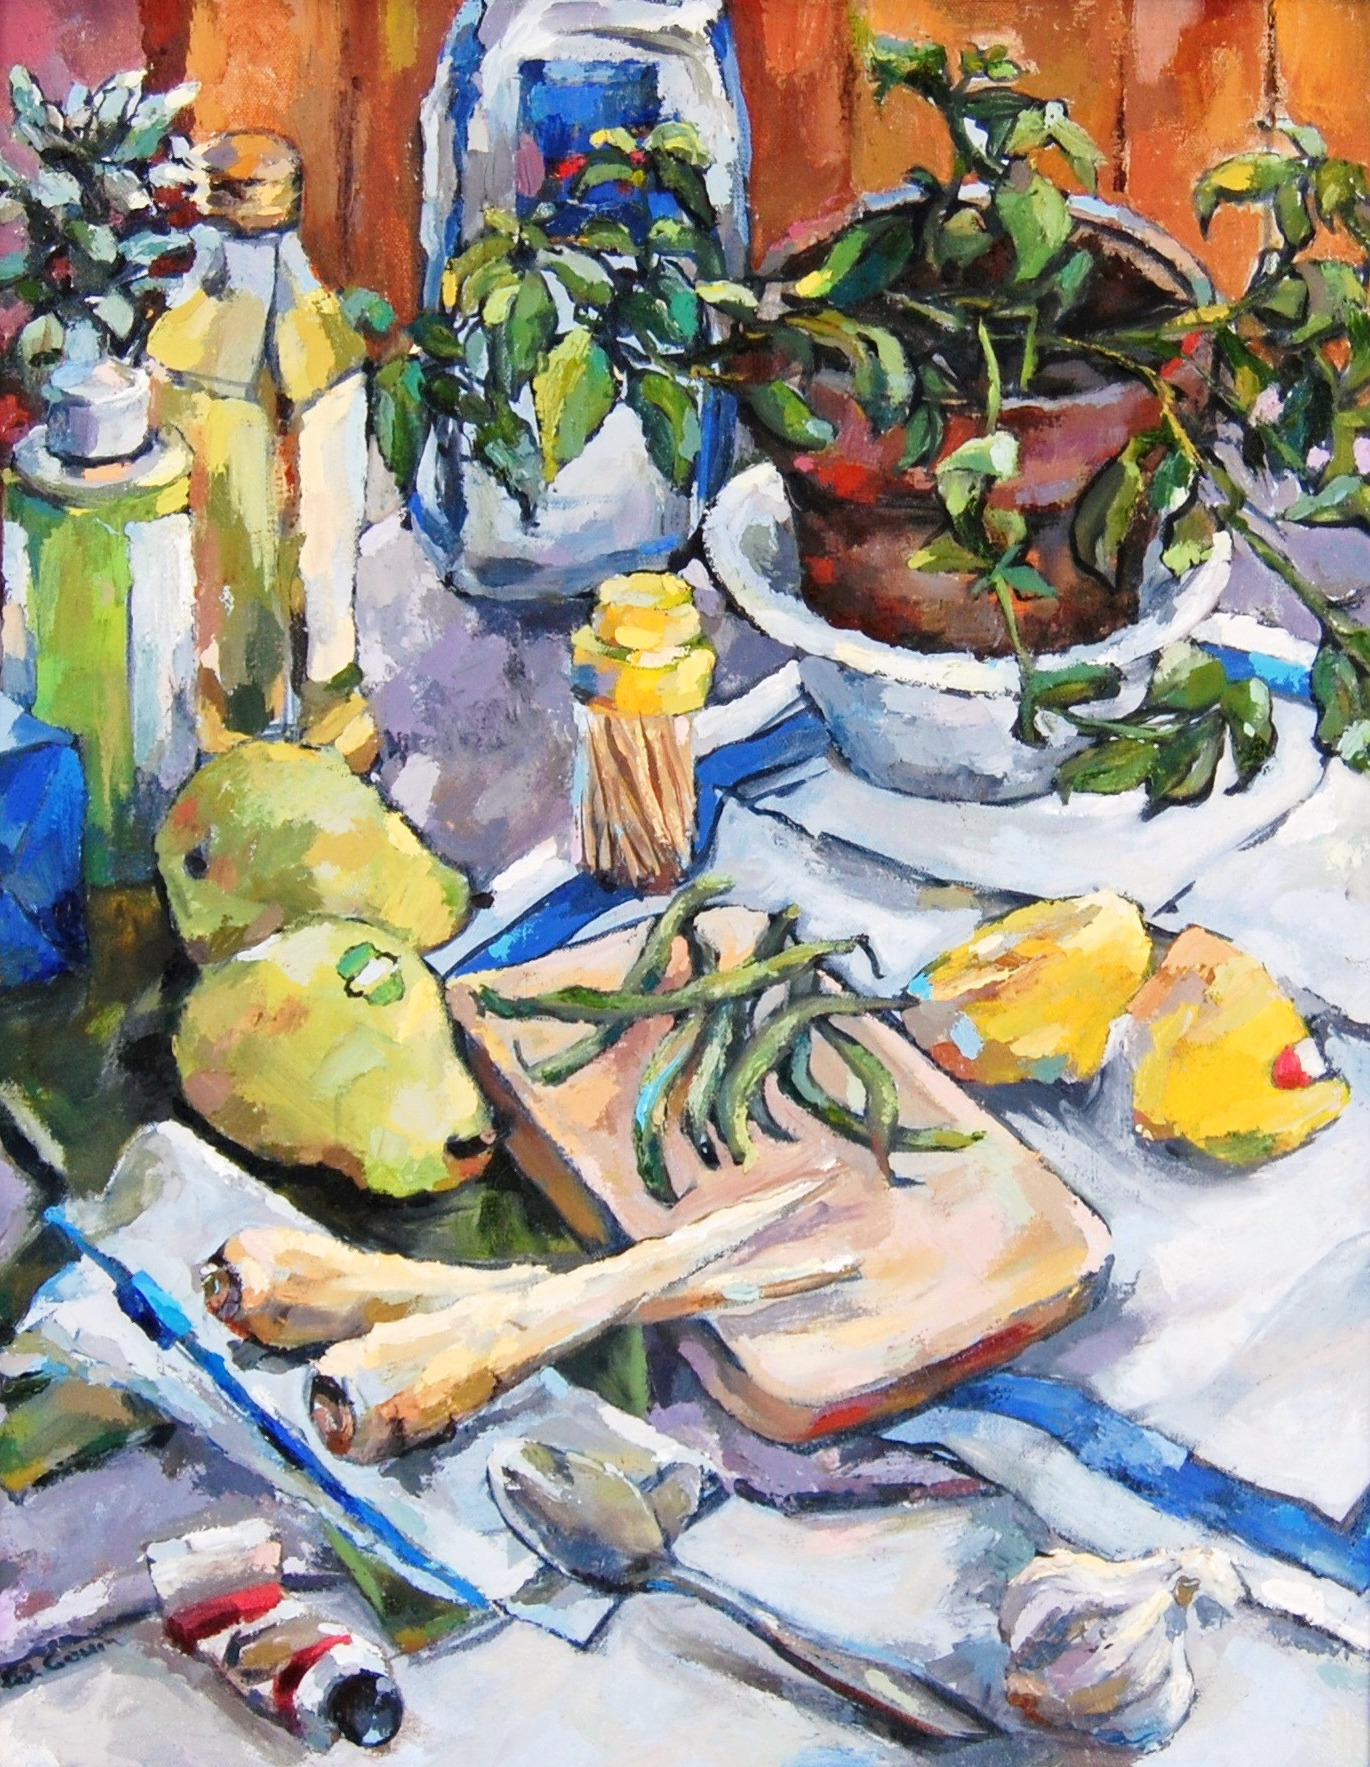 Still Life with Parsnips, Oil on canvas, 2013